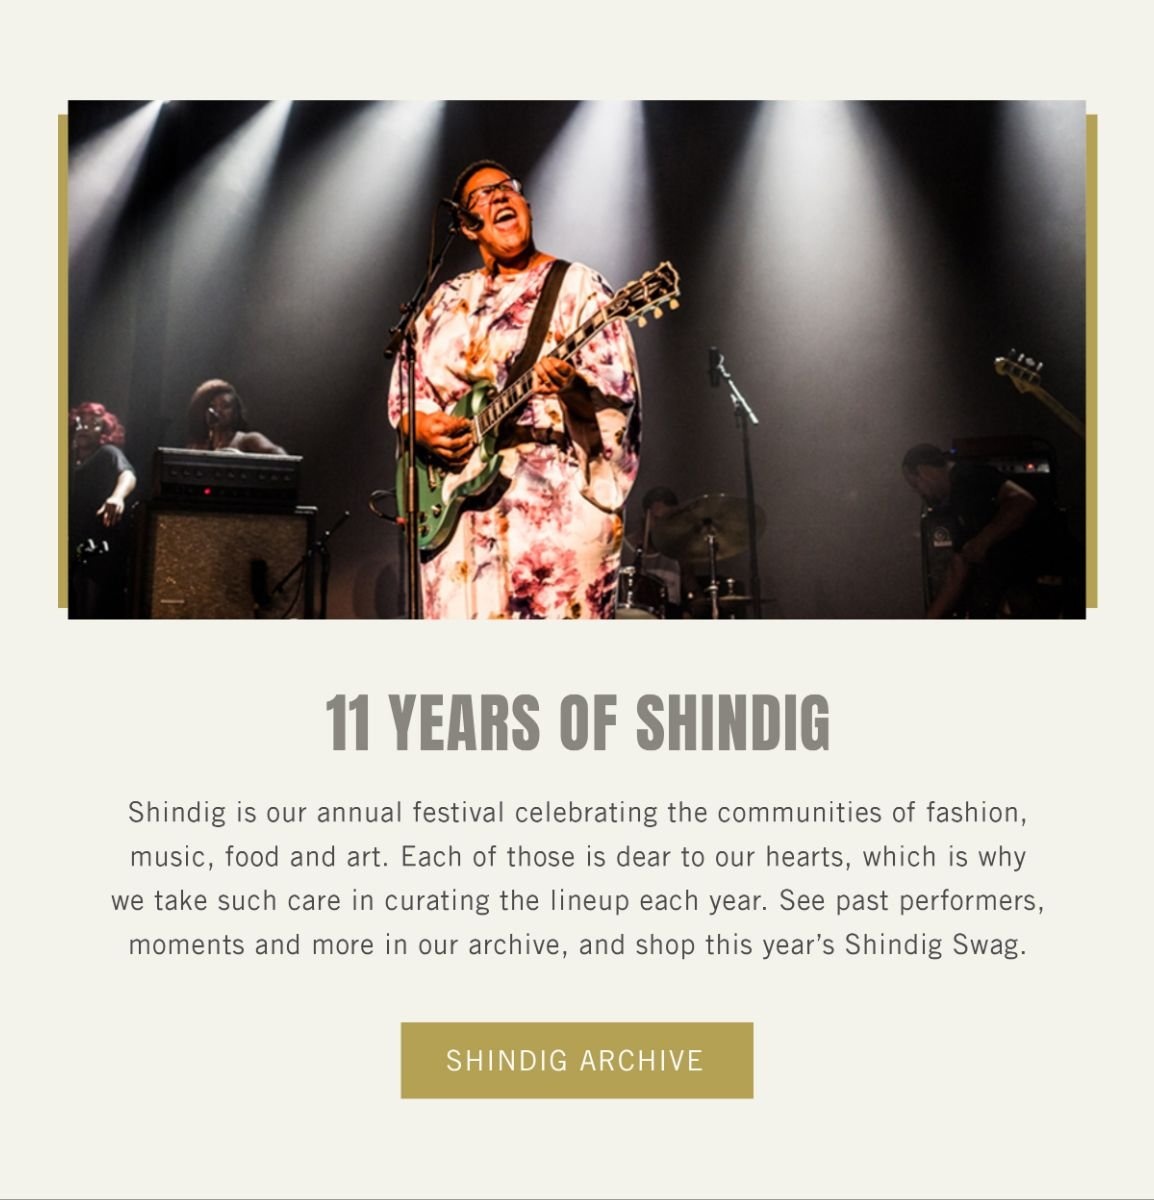 11 Years of Shindig - Shindig Archive and Shop